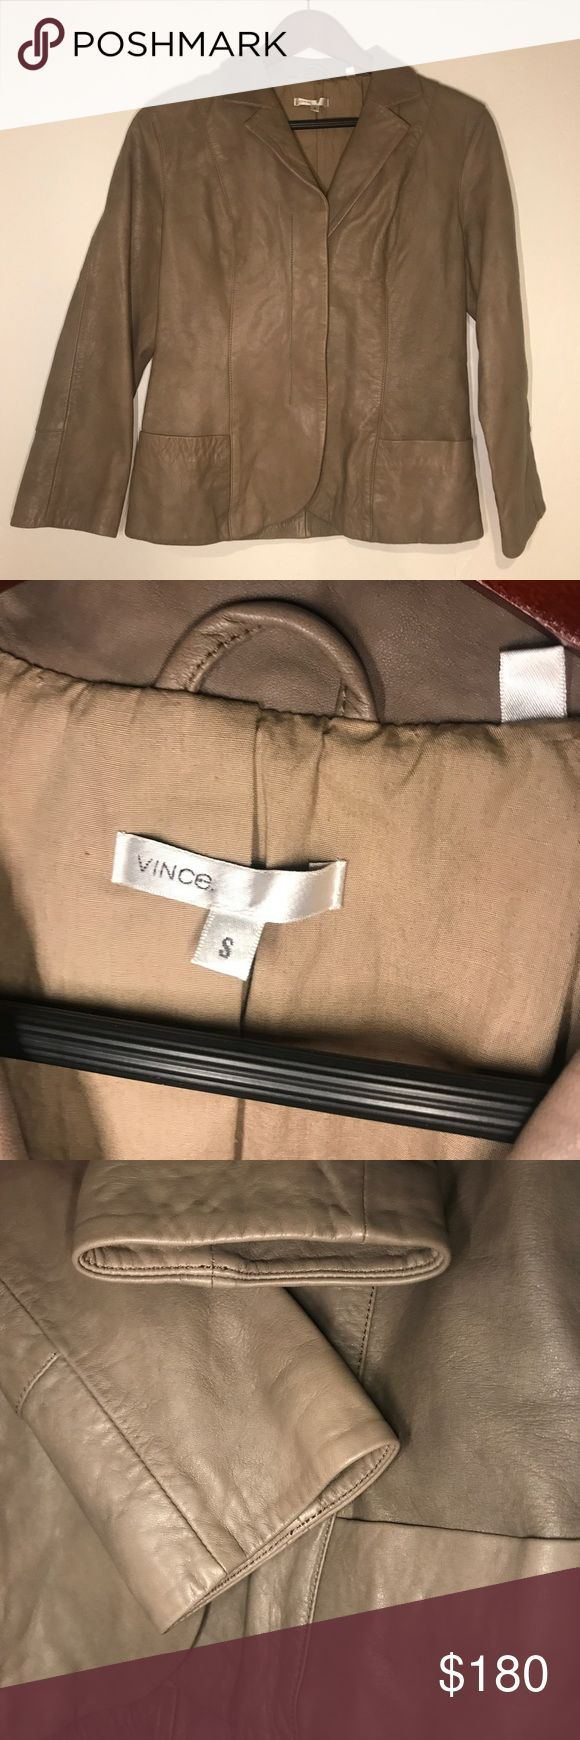 Vince Tan Leather Jacket Blazer brown leather In excellent condition.  No signs of wear or defect.  There are no stains and the leather is in excellent condition.  The Jacket has hidden snap buttons and welt pocket detailing.  Great with jeans or slacks.  Measurements uploaded shortly. Vince Jackets & Coats Blazers